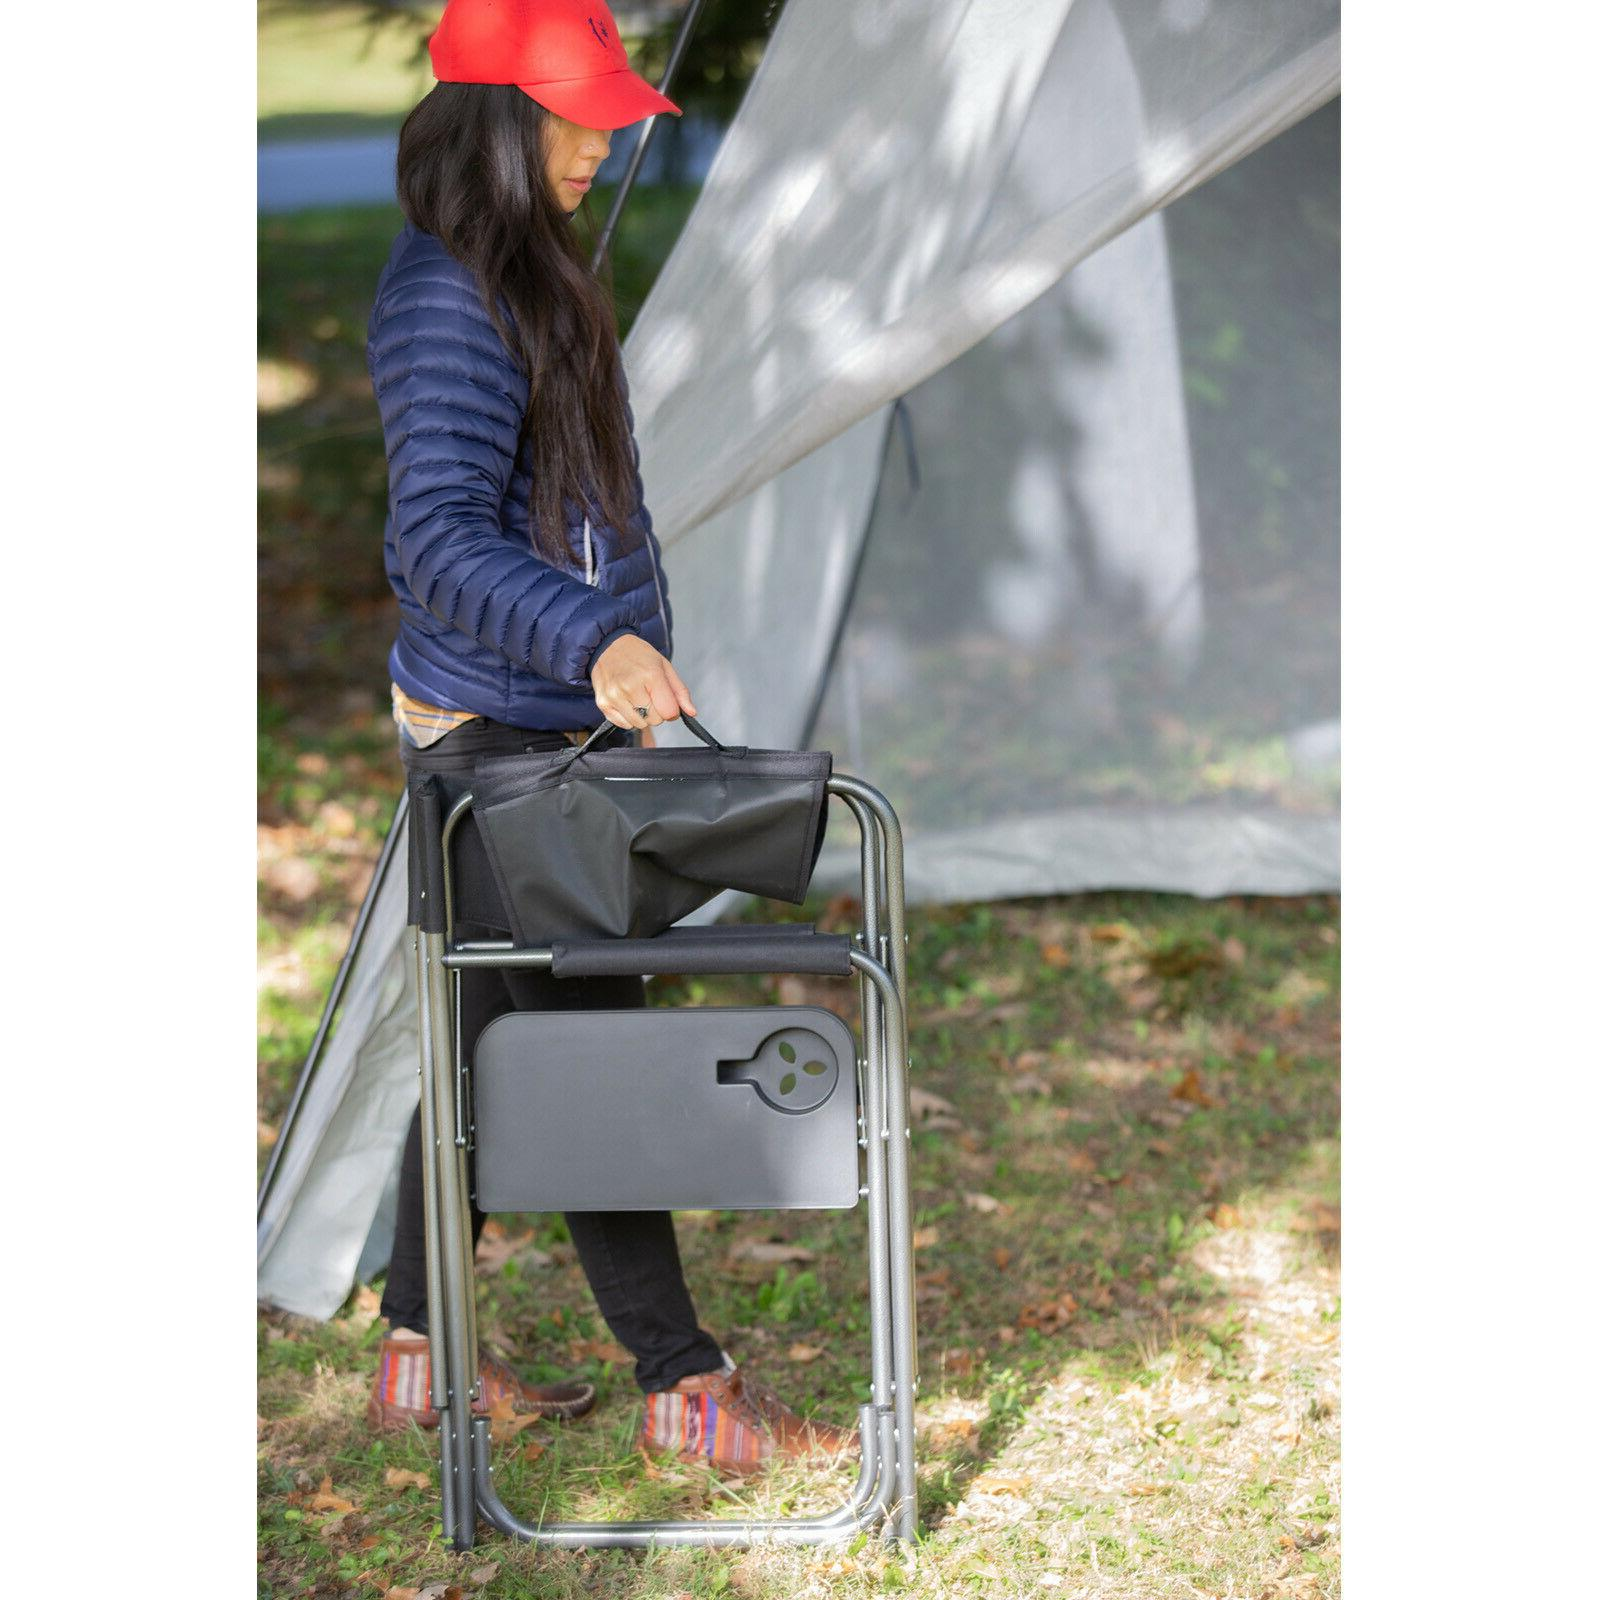 Camping Folding Chair Outdoor Table Cup Holder 400lbs